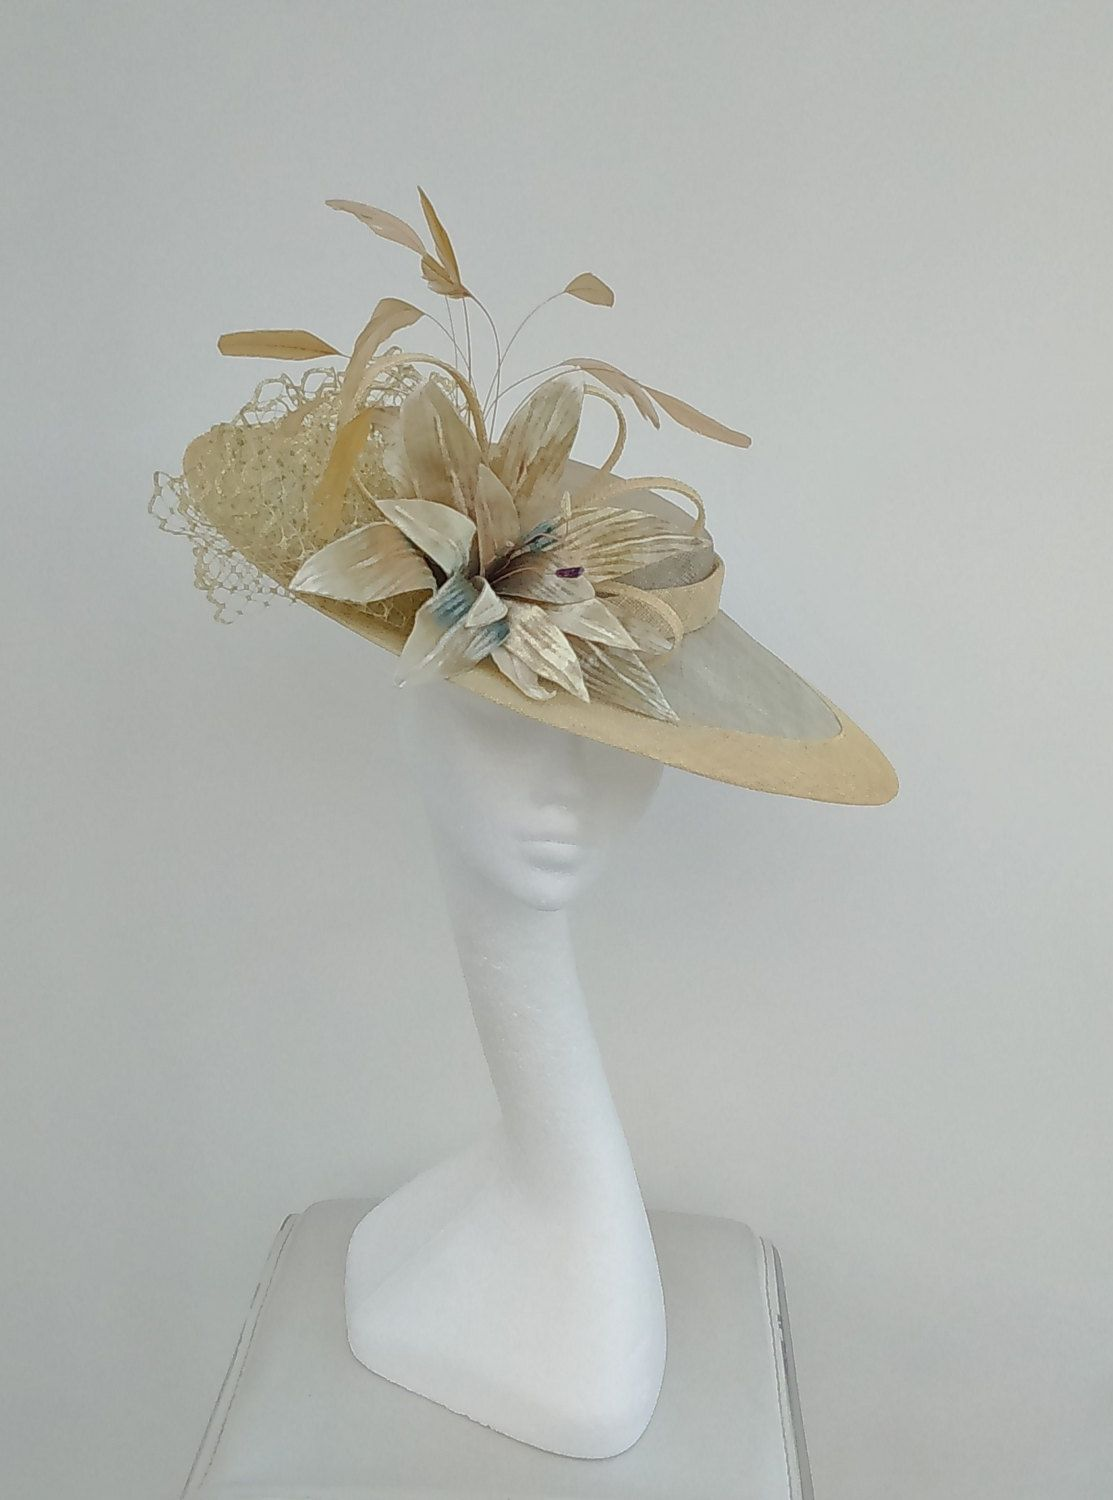 Elegant Fascinator for Weddings, Kentucky Derby, Racing Fashion, Mother of the Bride by JayneAlisonMillinery on Etsy